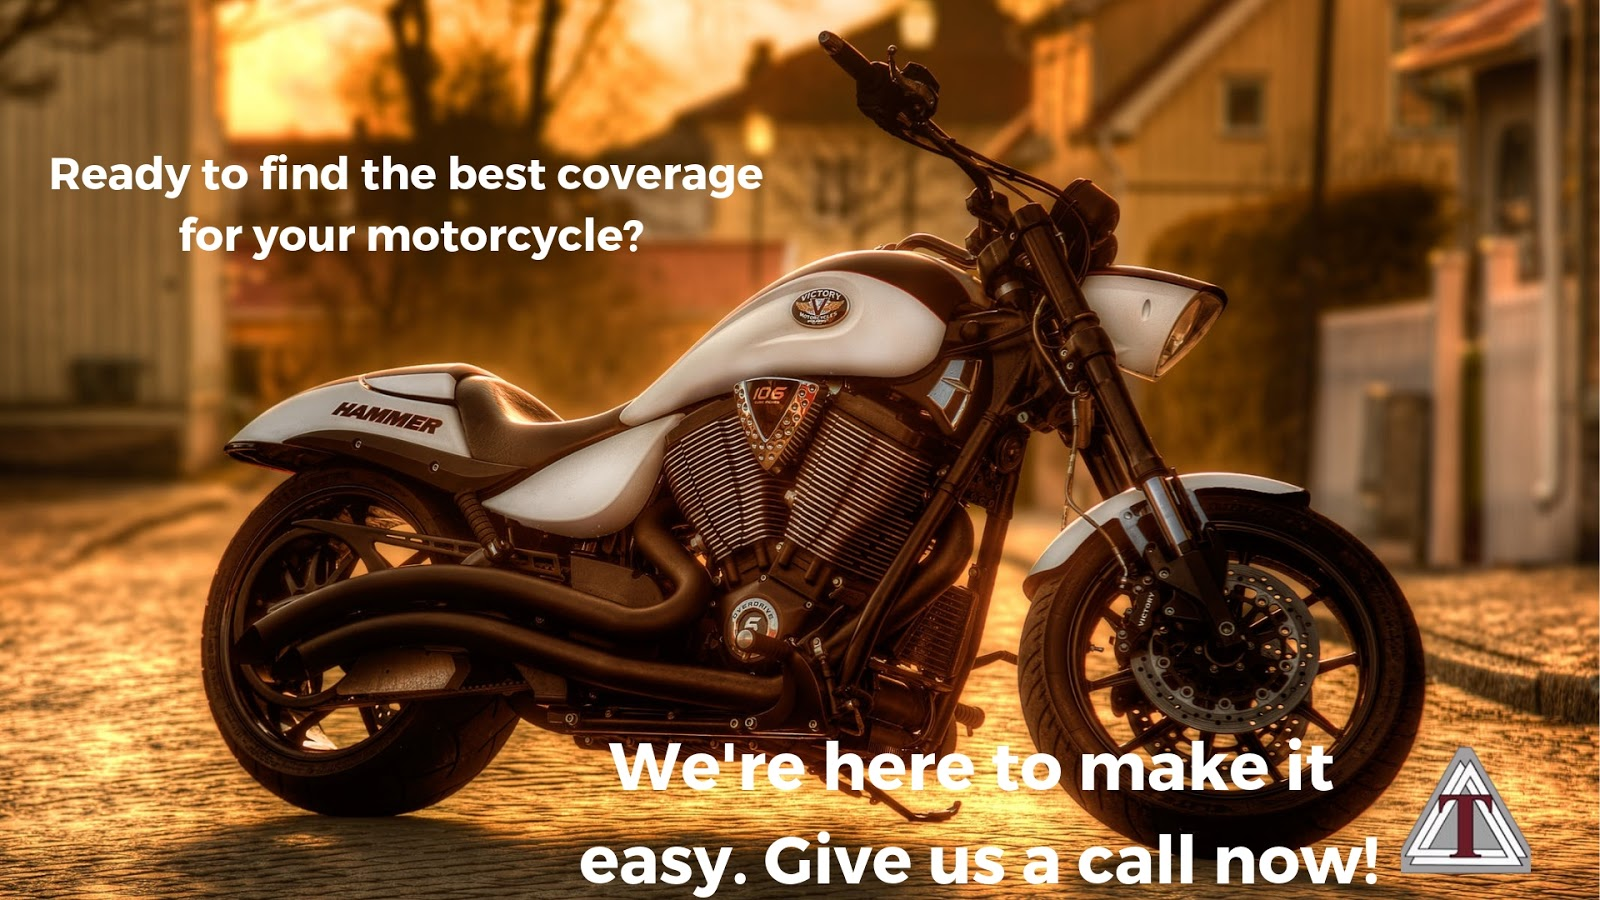 Ready to find the best coverage for your motorcycle_.jpg